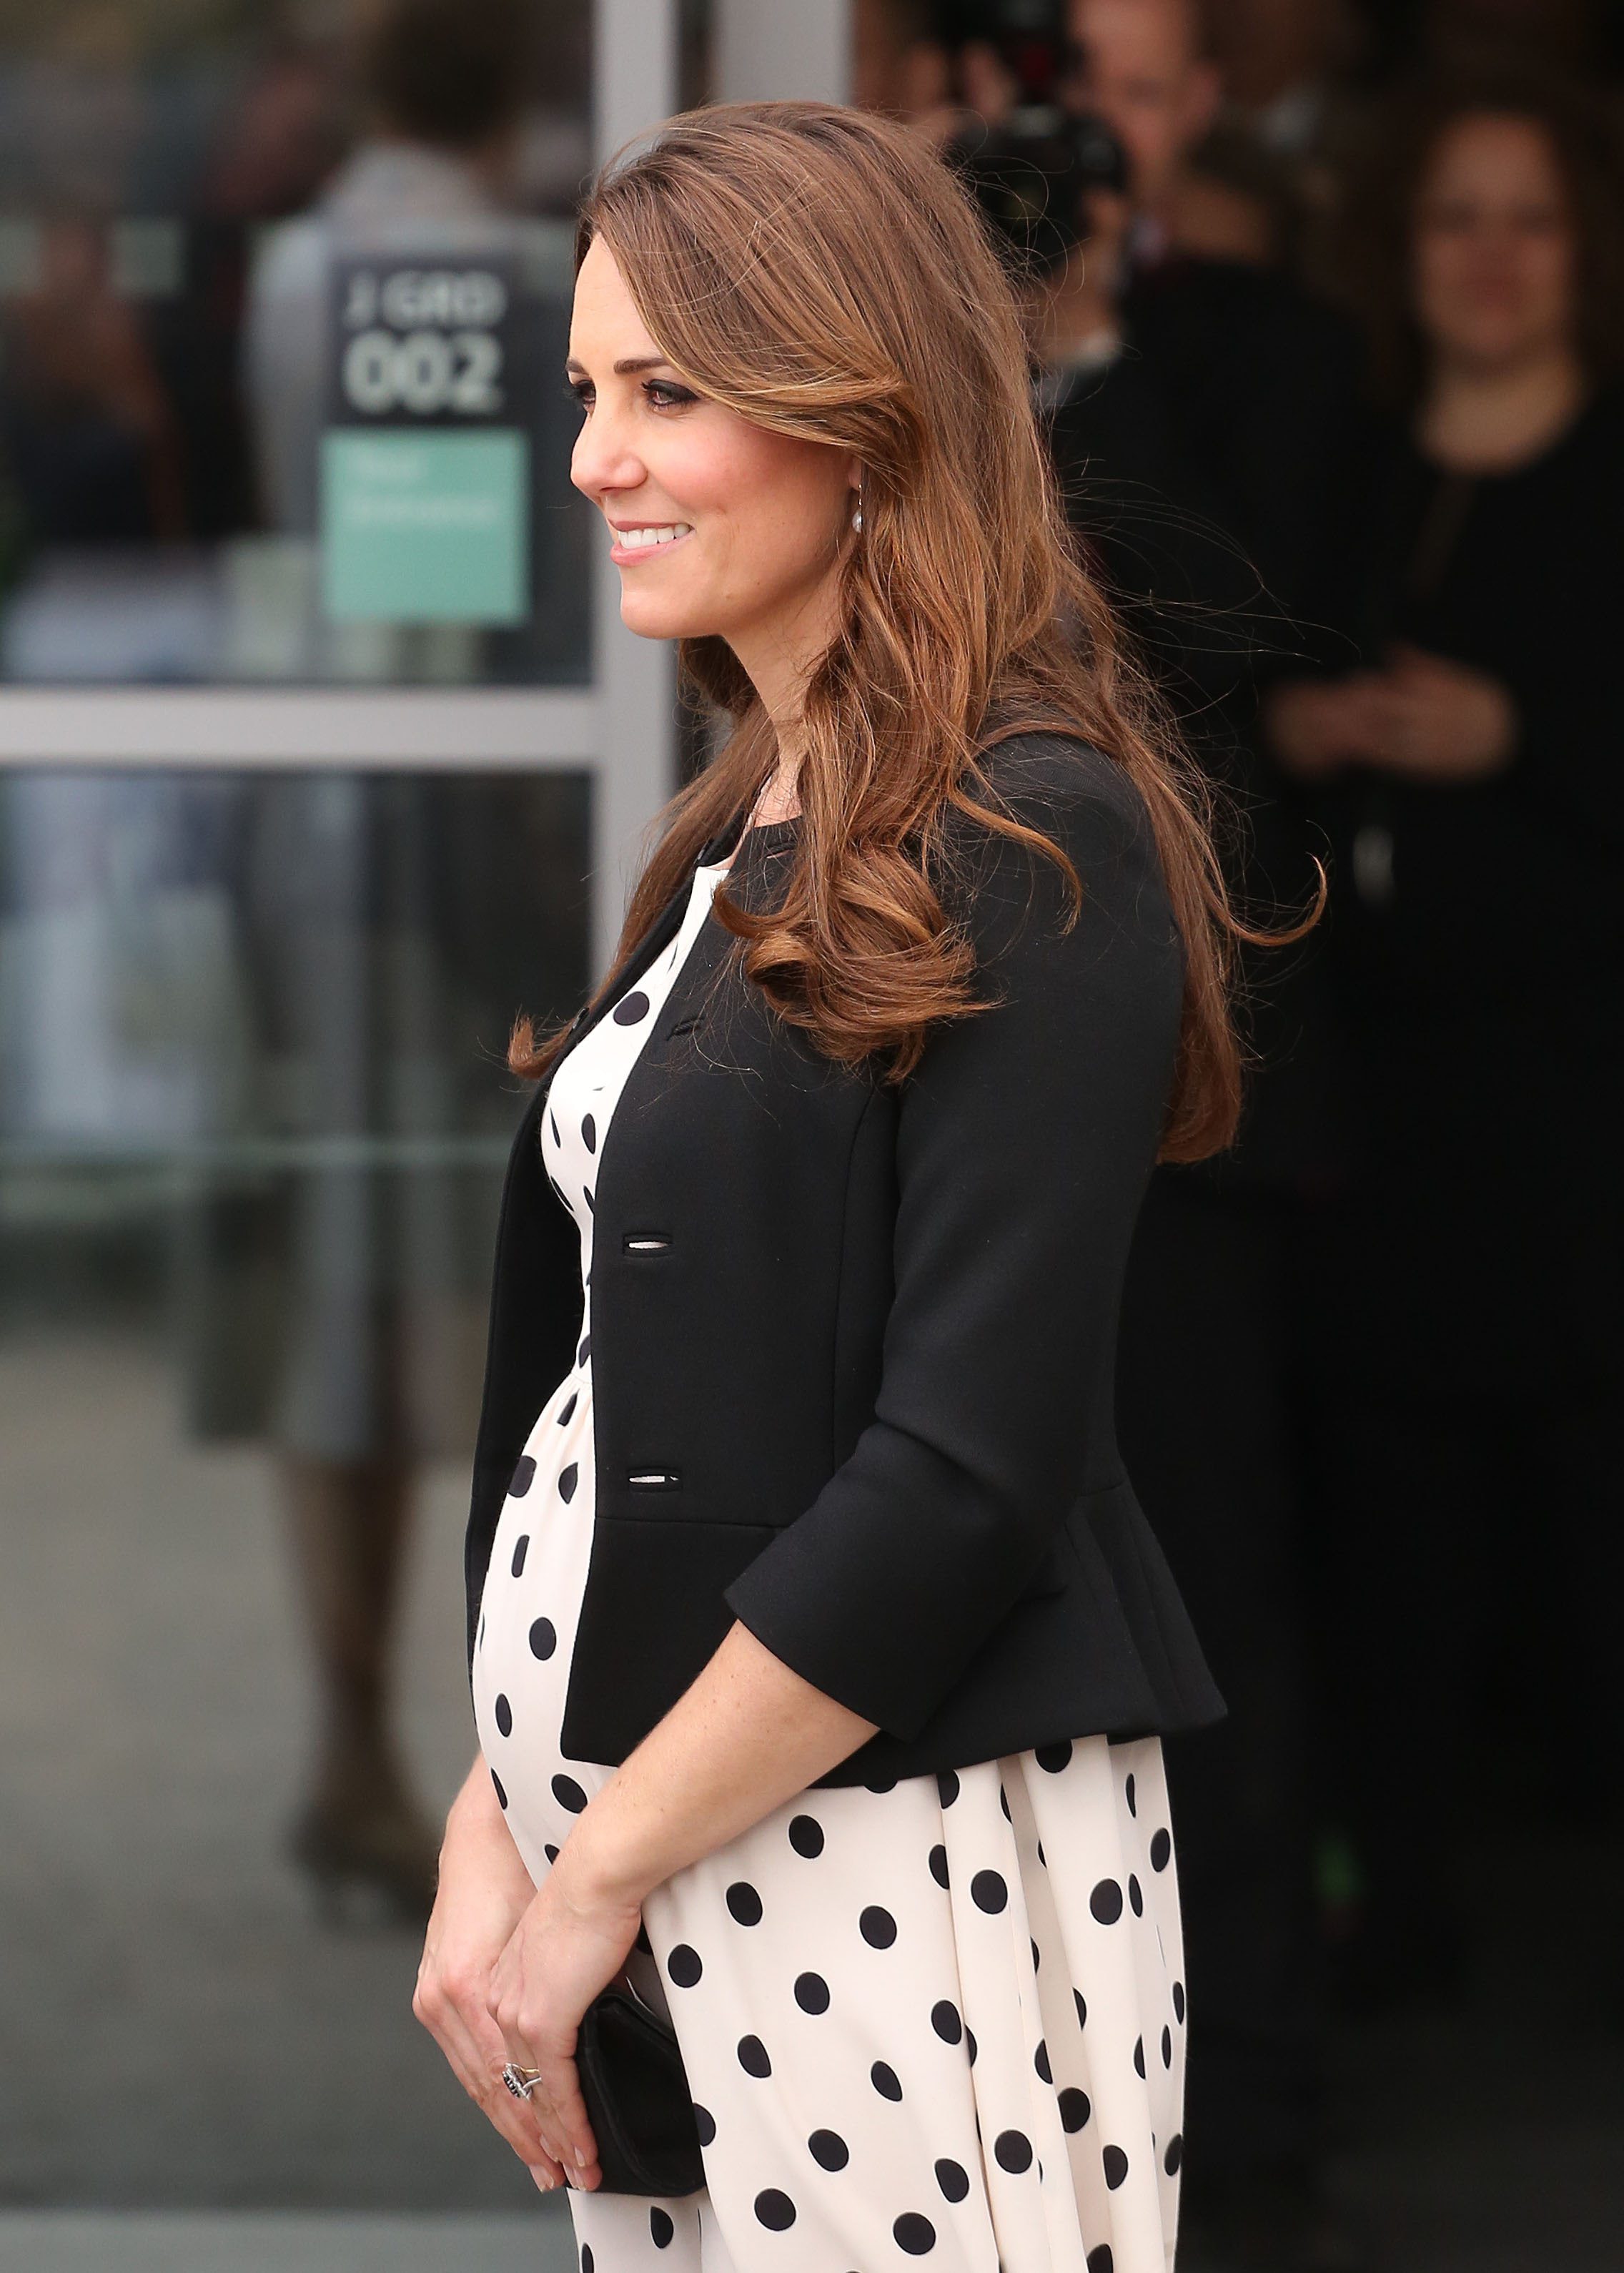 kate middelton baby, duchess kate middelton gives birth, midwives, NHS, UK midwives